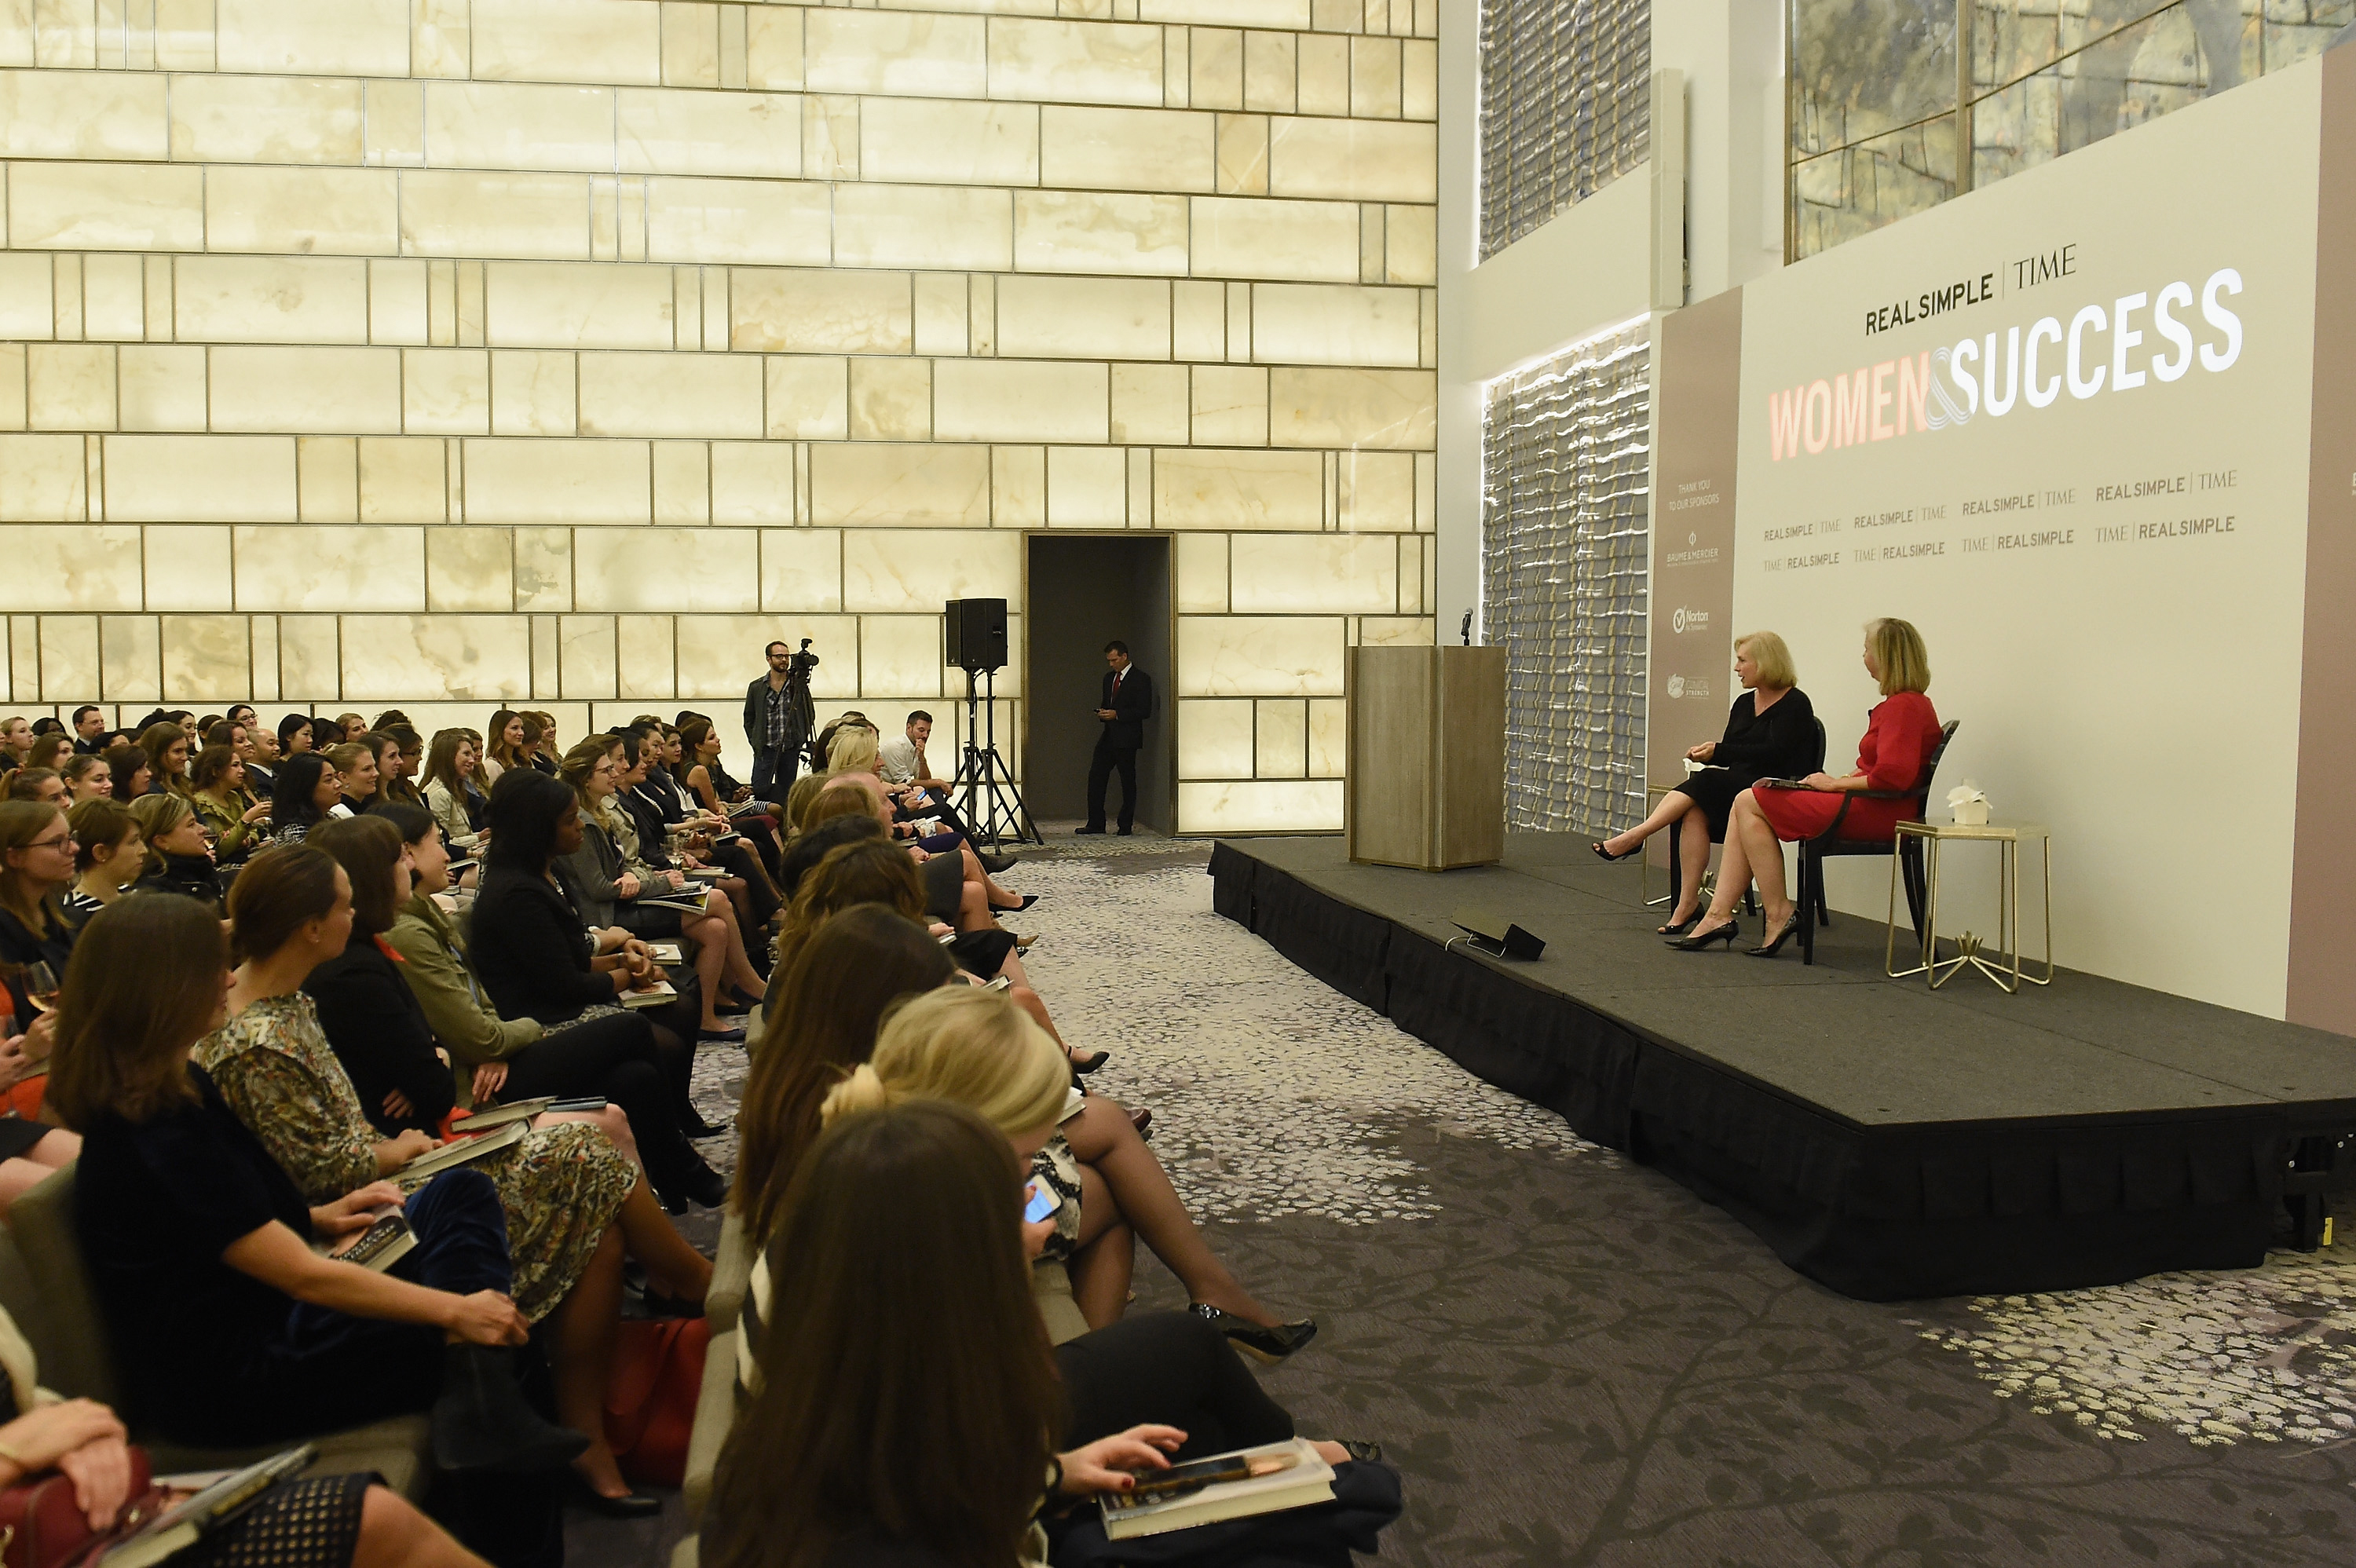 Kirsten Gillibrand and Nancy Gibbs speak at the TIME and Real Simple's Women & Success event at the Park Hyatt on Oct. 1, 2014 in New York City.